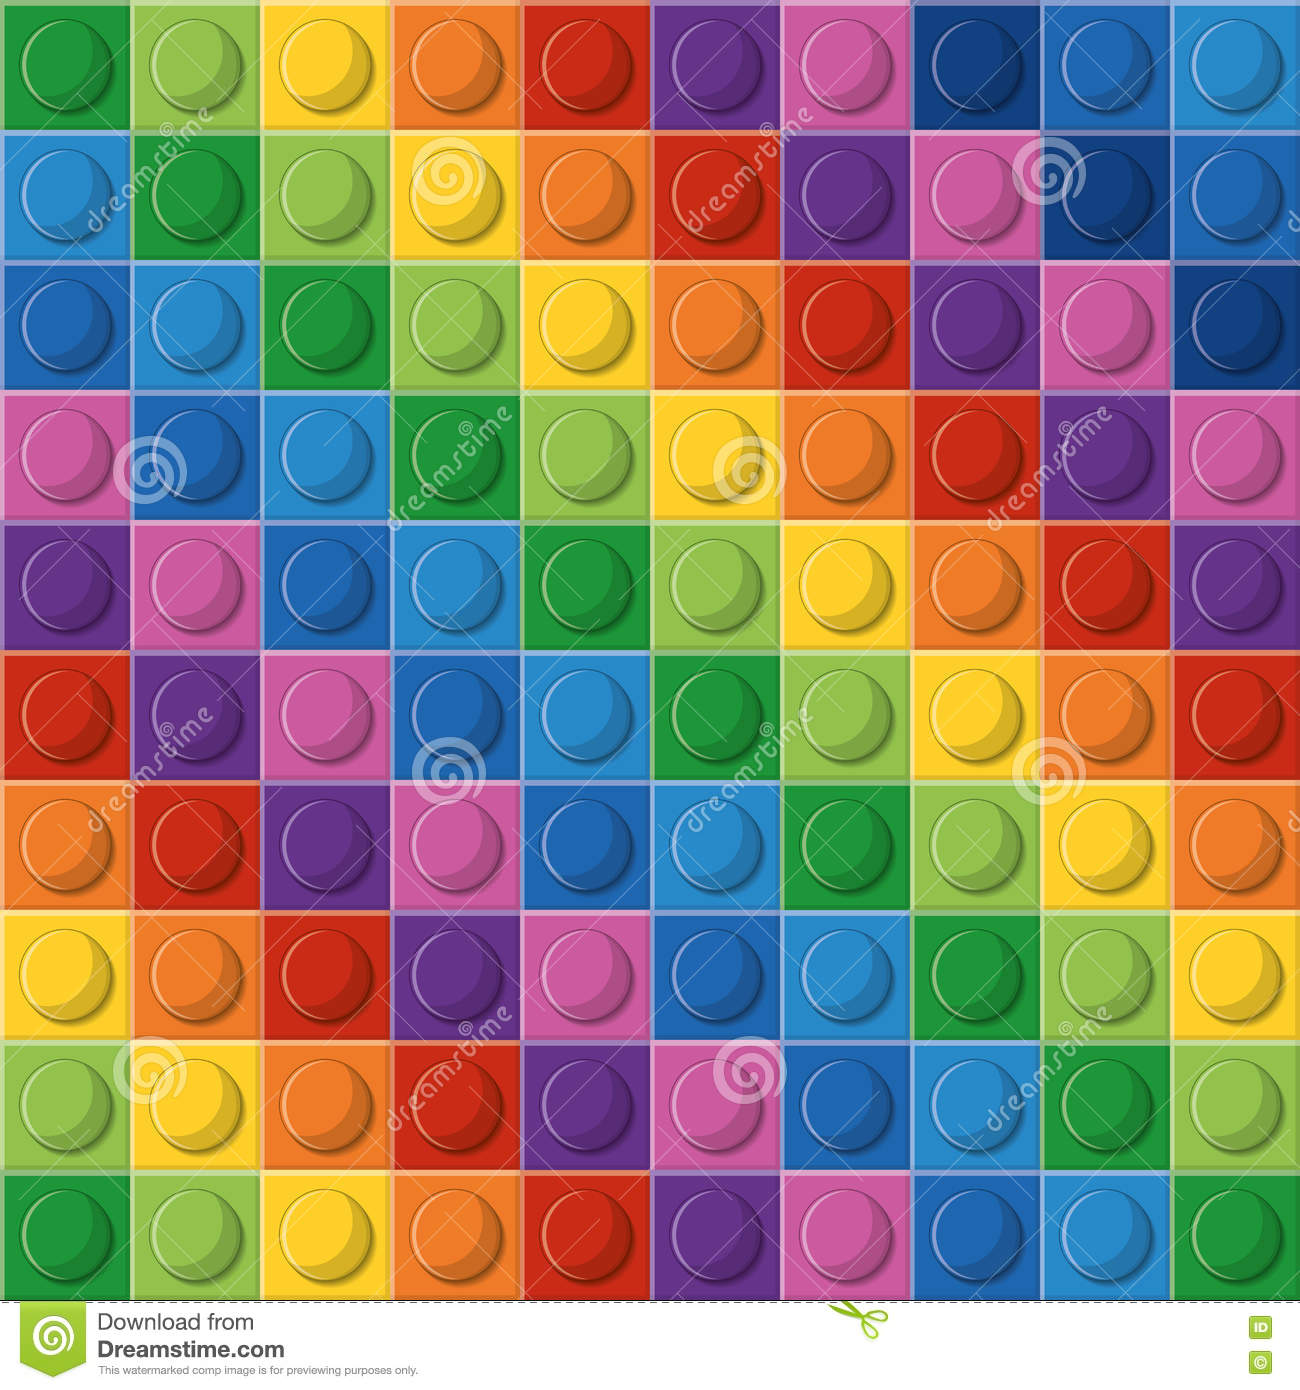 Legopictogram Abstract cijfer multicolored Grafische vector